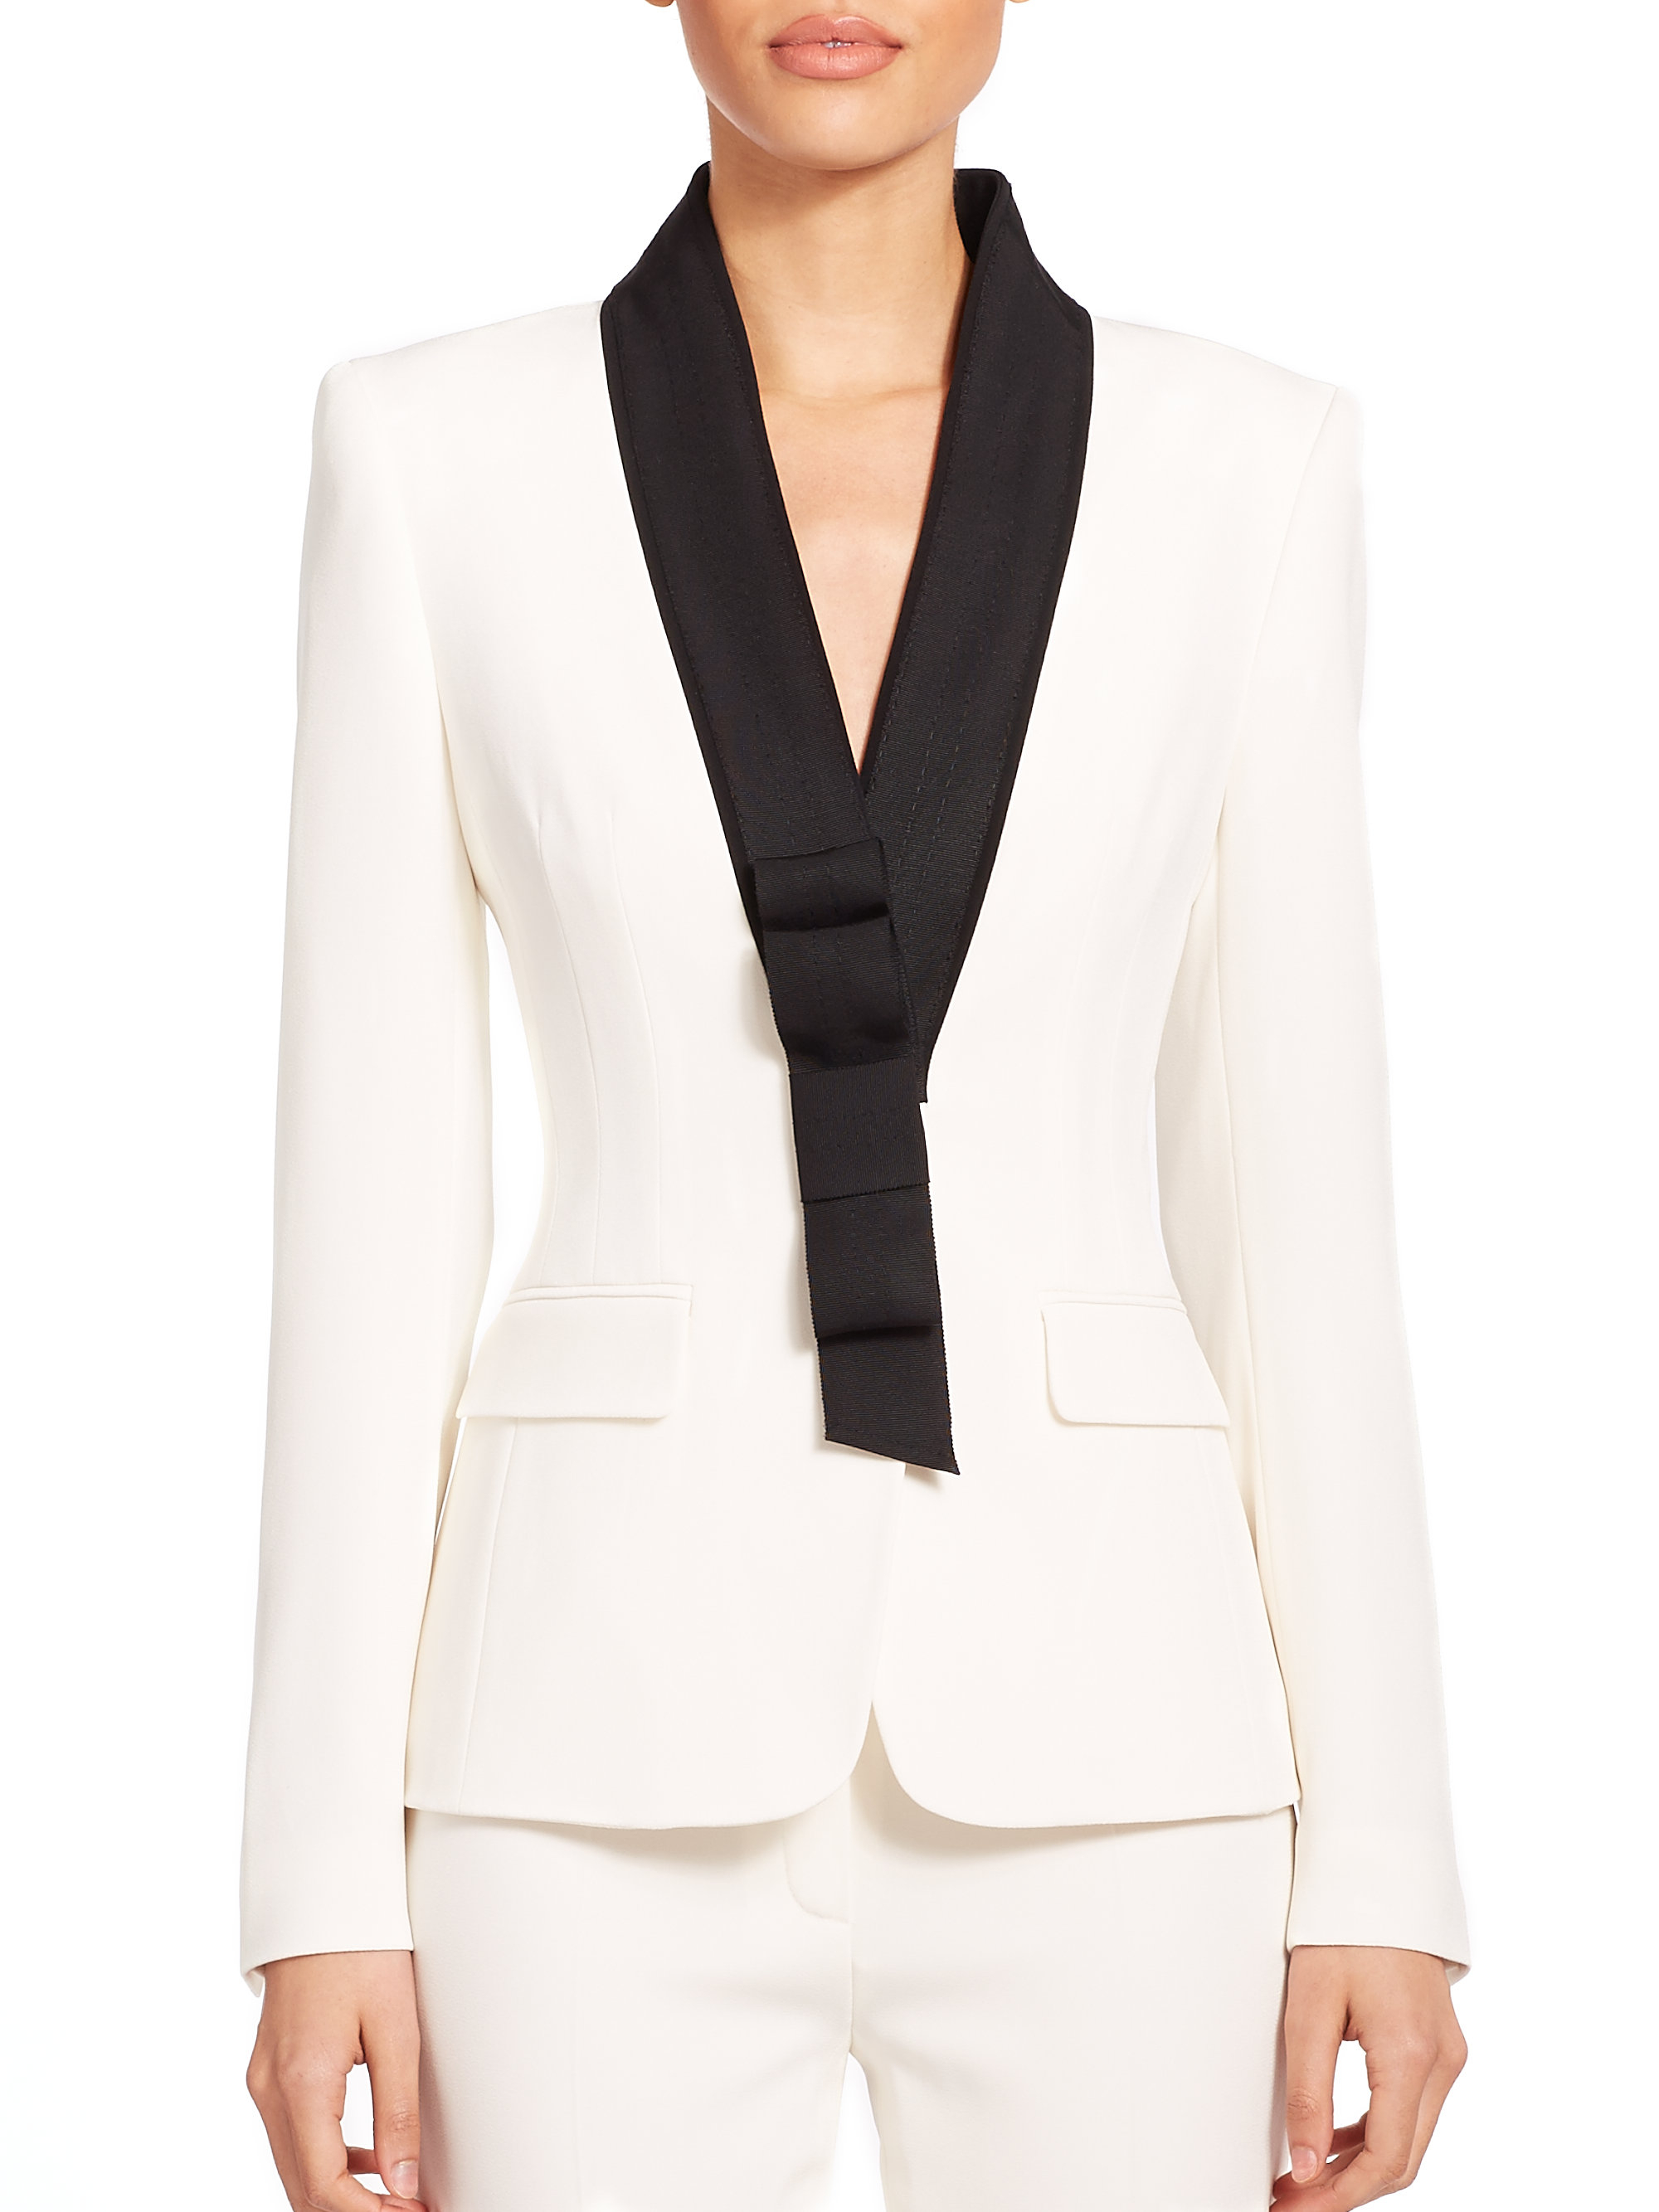 Black Blazer With Jeans Womens